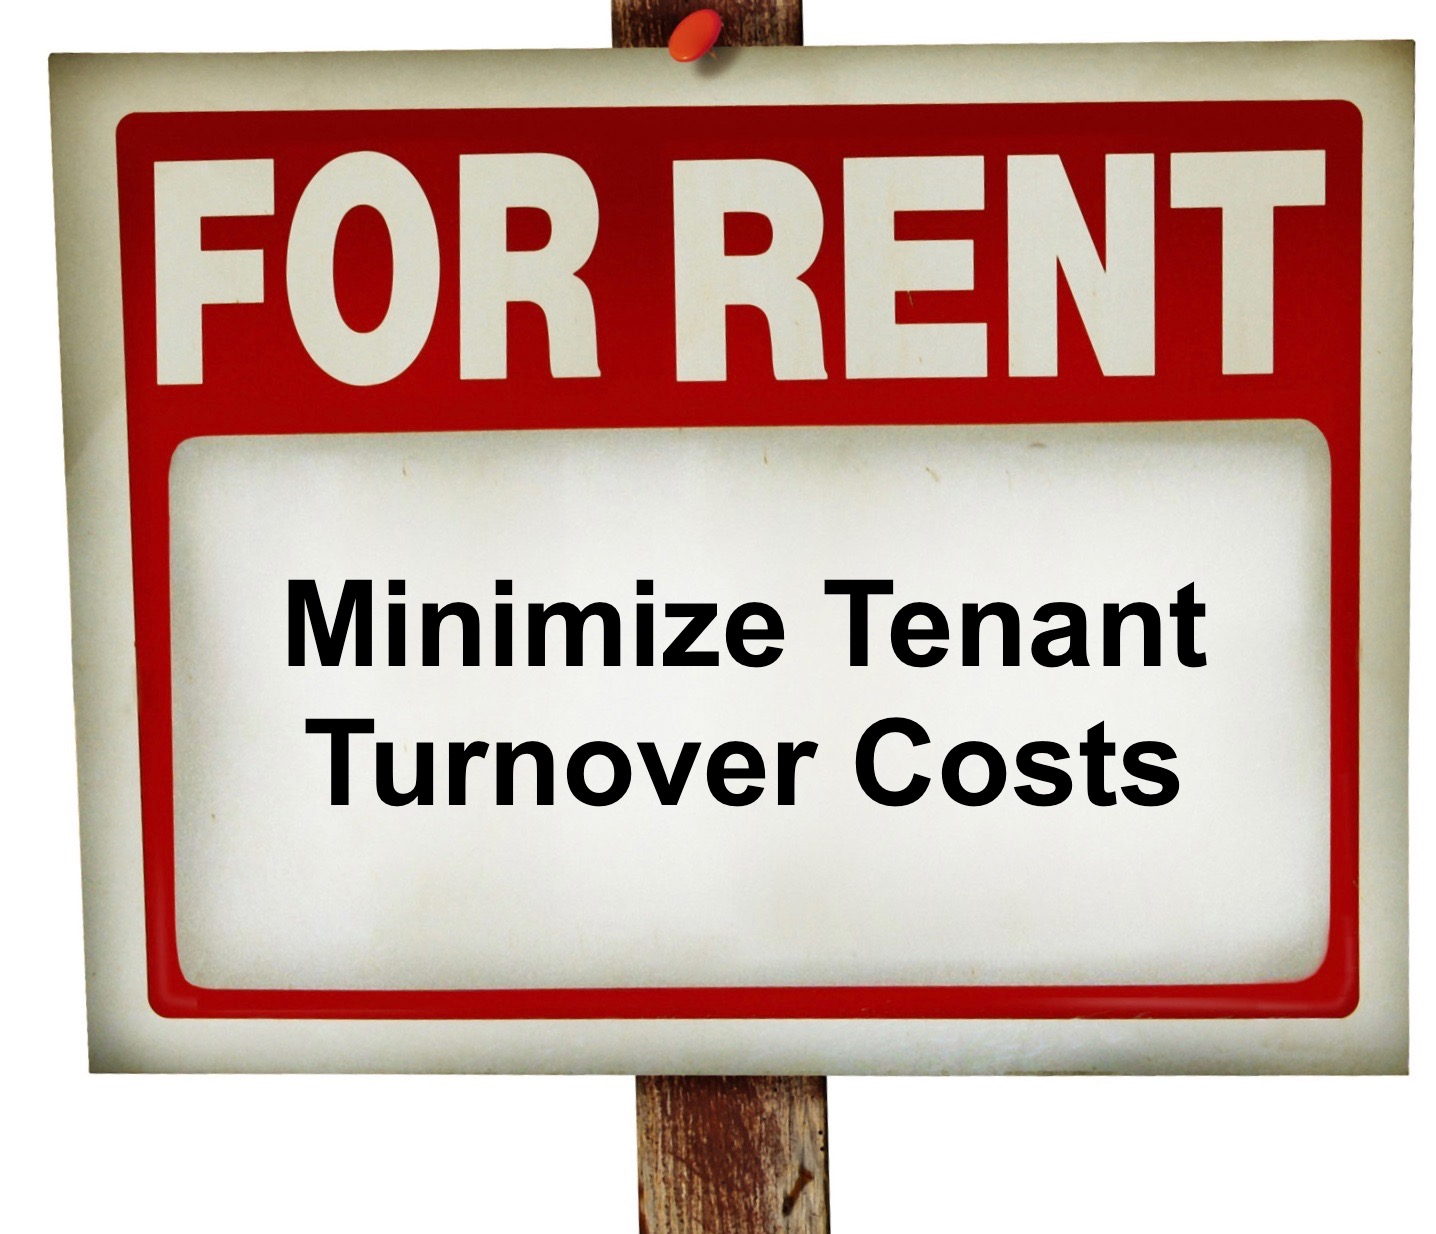 How to minimize tenant turnover costs